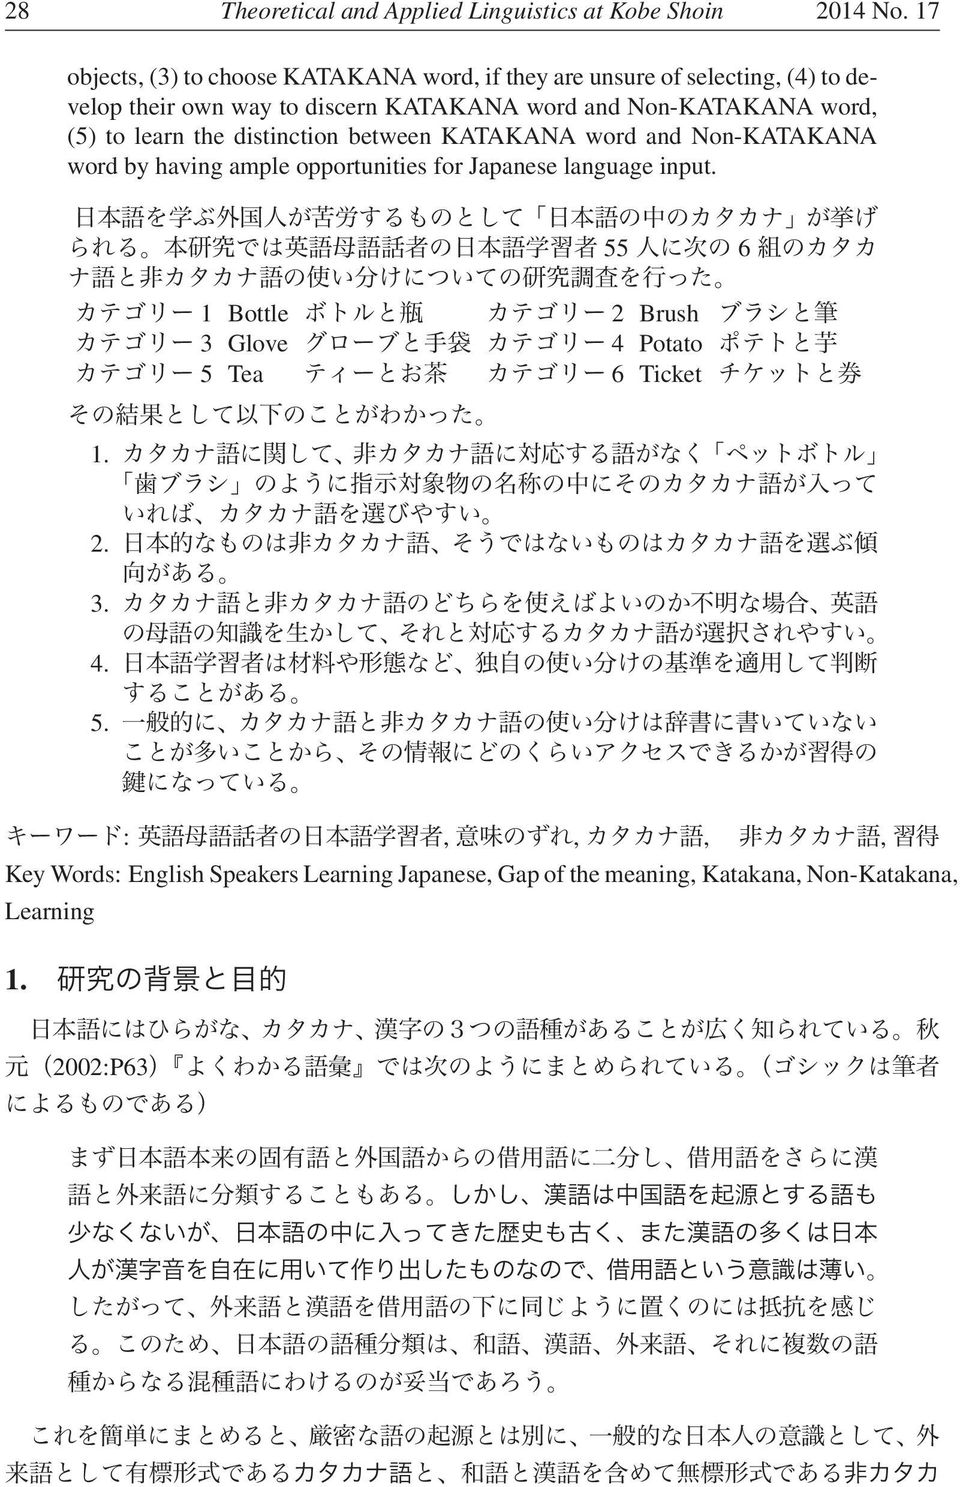 Non-KATAKANA word, (5) to learn the distinction between KATAKANA word and Non-KATAKANA word by having ample opportunities for